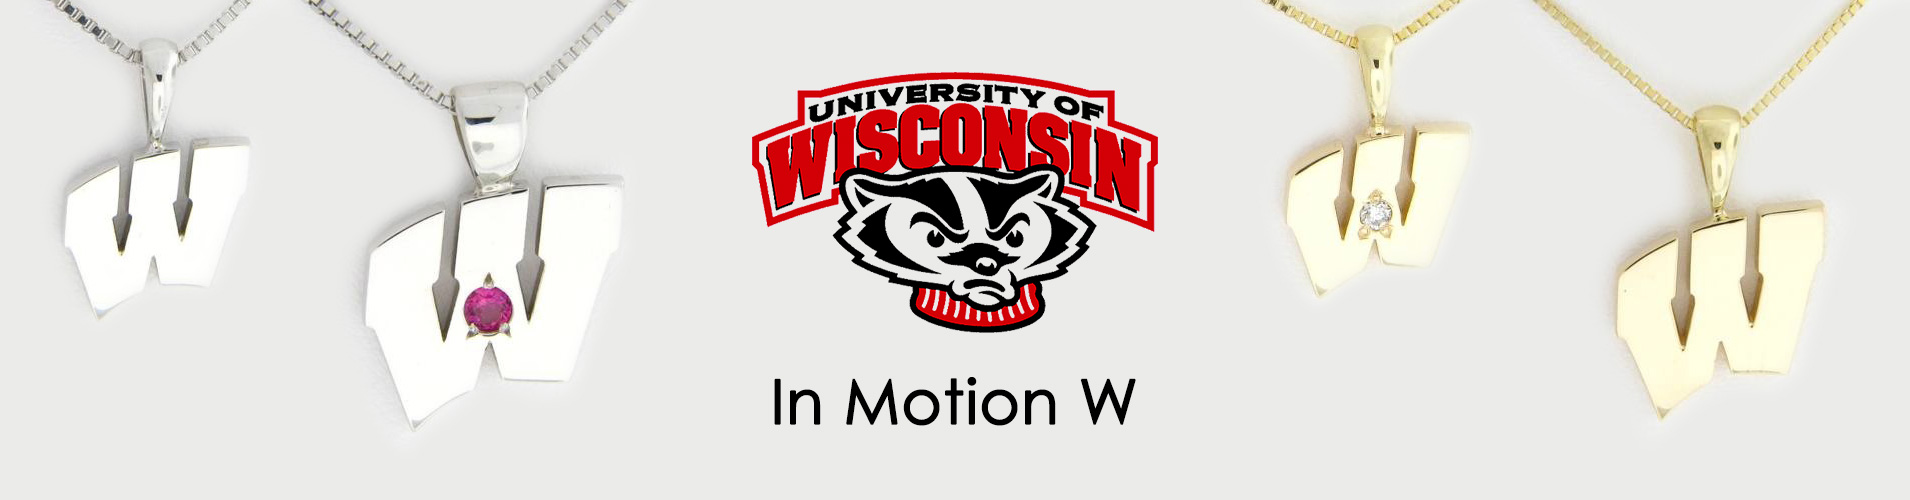 UW Bucky Badger Motion W